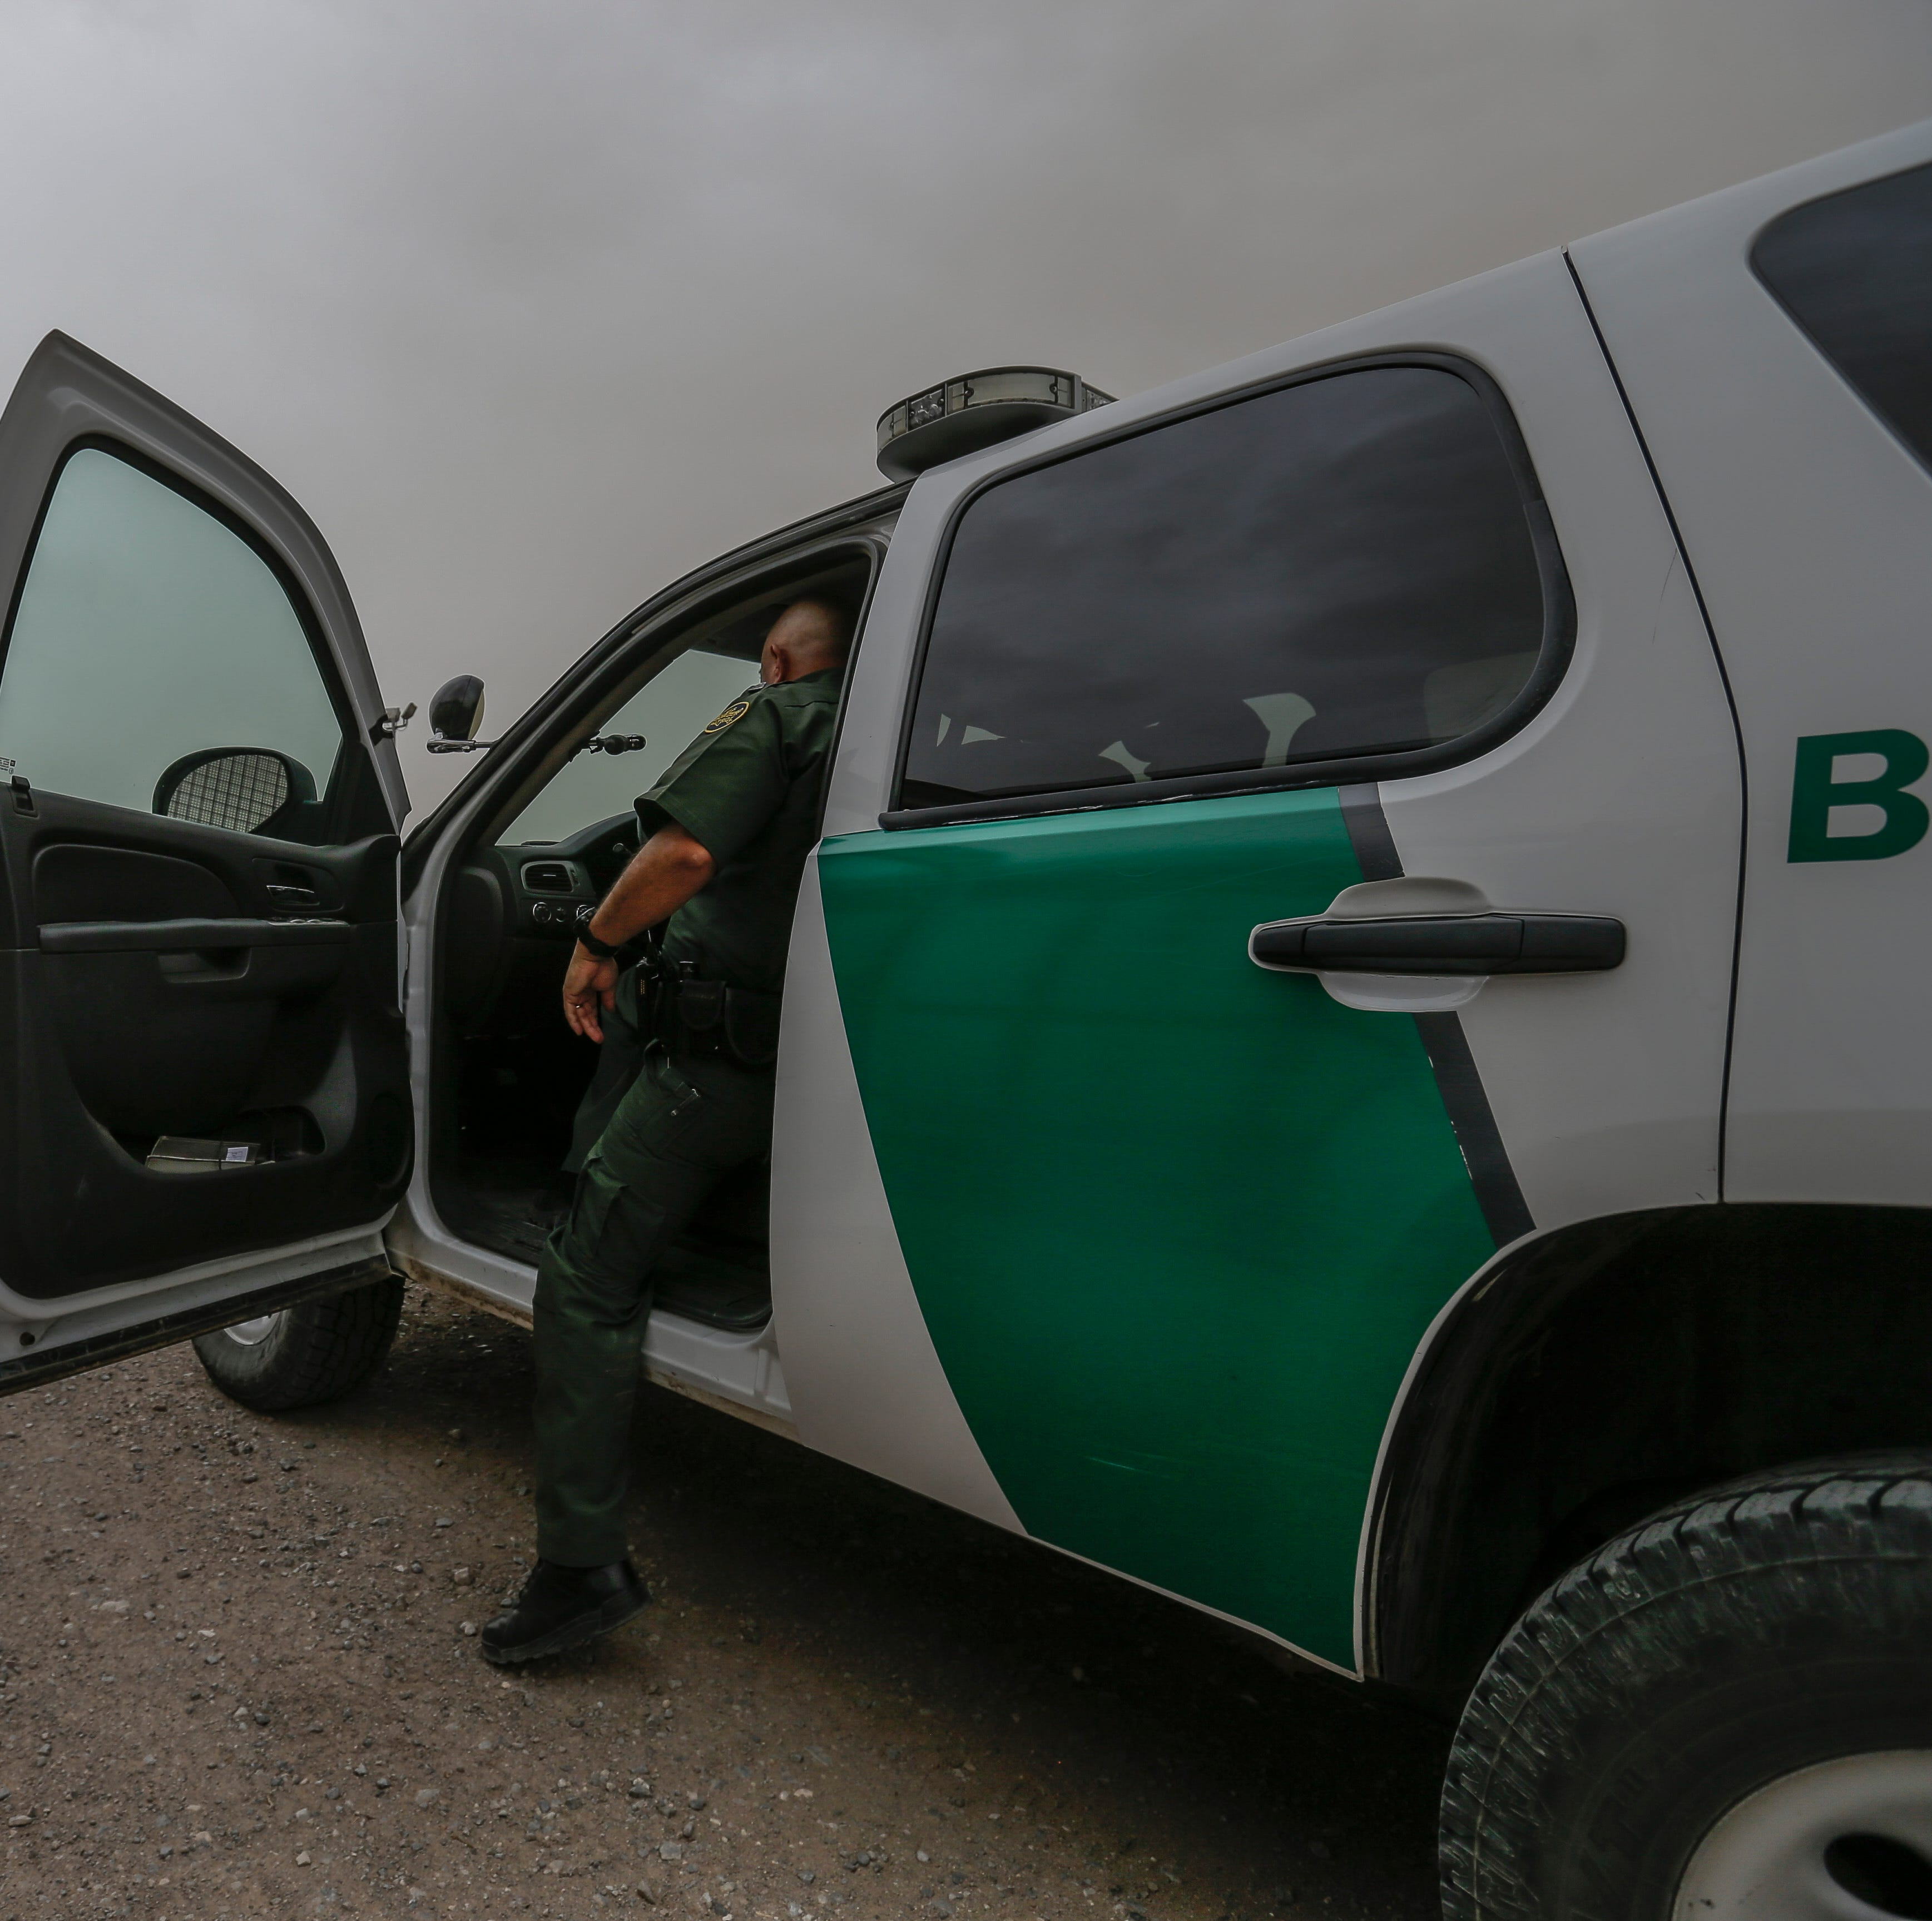 Border Patrol chase ends in deadly crash, killing 2 migrants in southern New Mexico